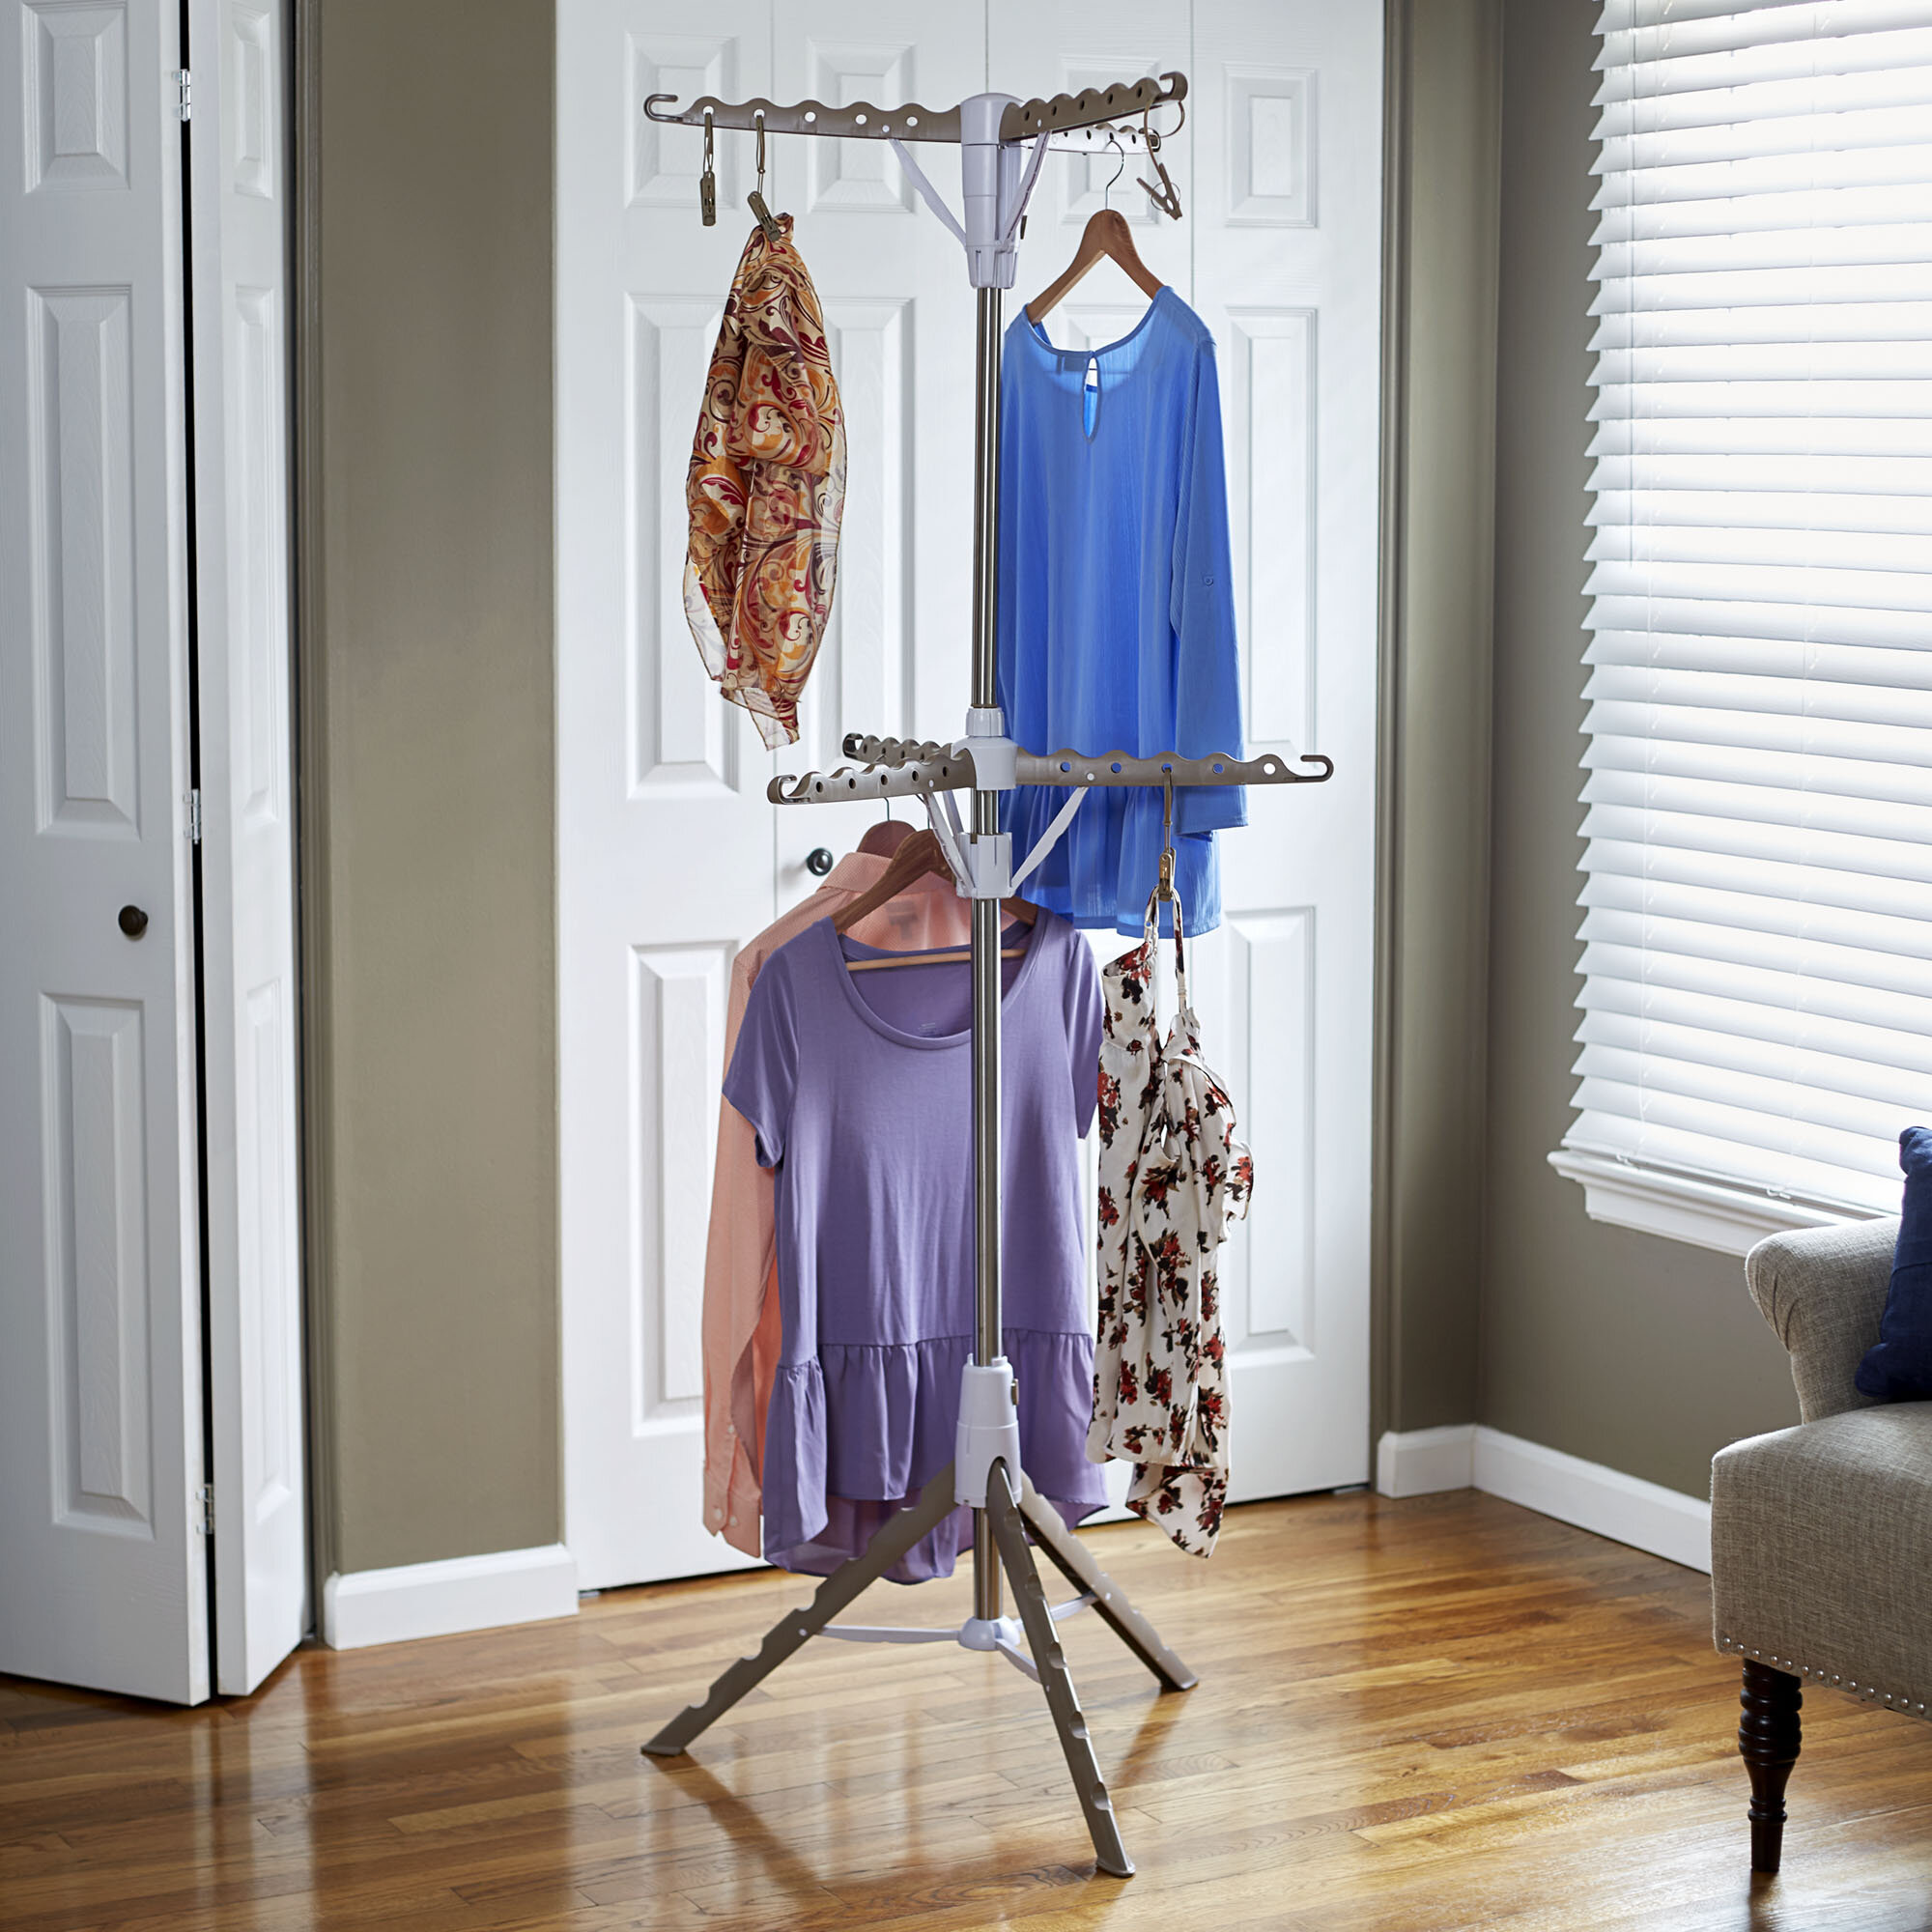 rack clothe walmart freestanding clothes for shelf ceiling exciting storage tier argos free tips cloth steel standing white organizer ideas your with